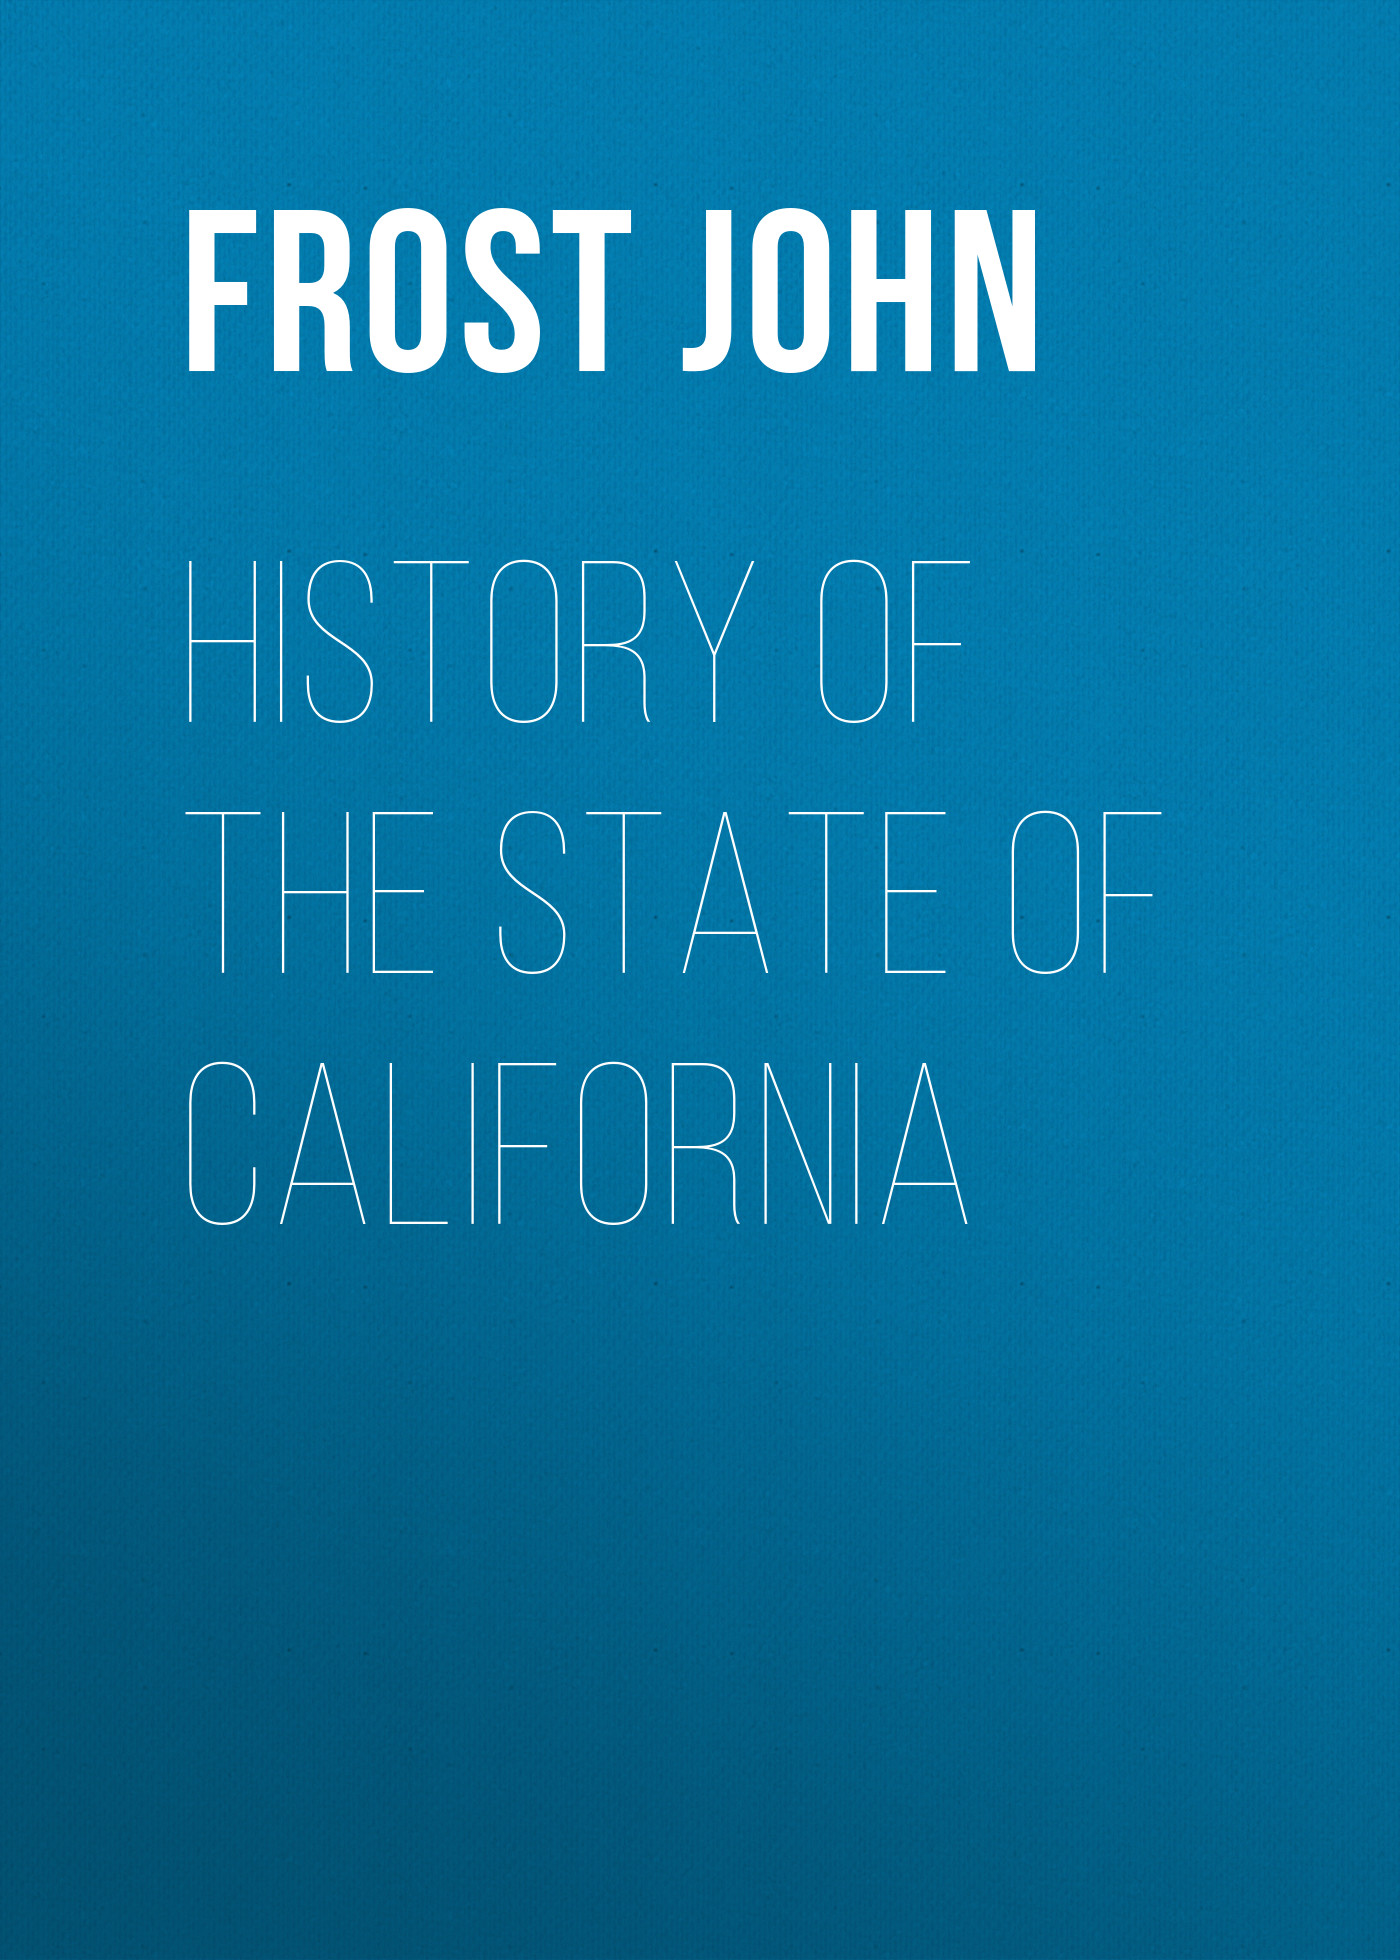 Frost John History of the State of California